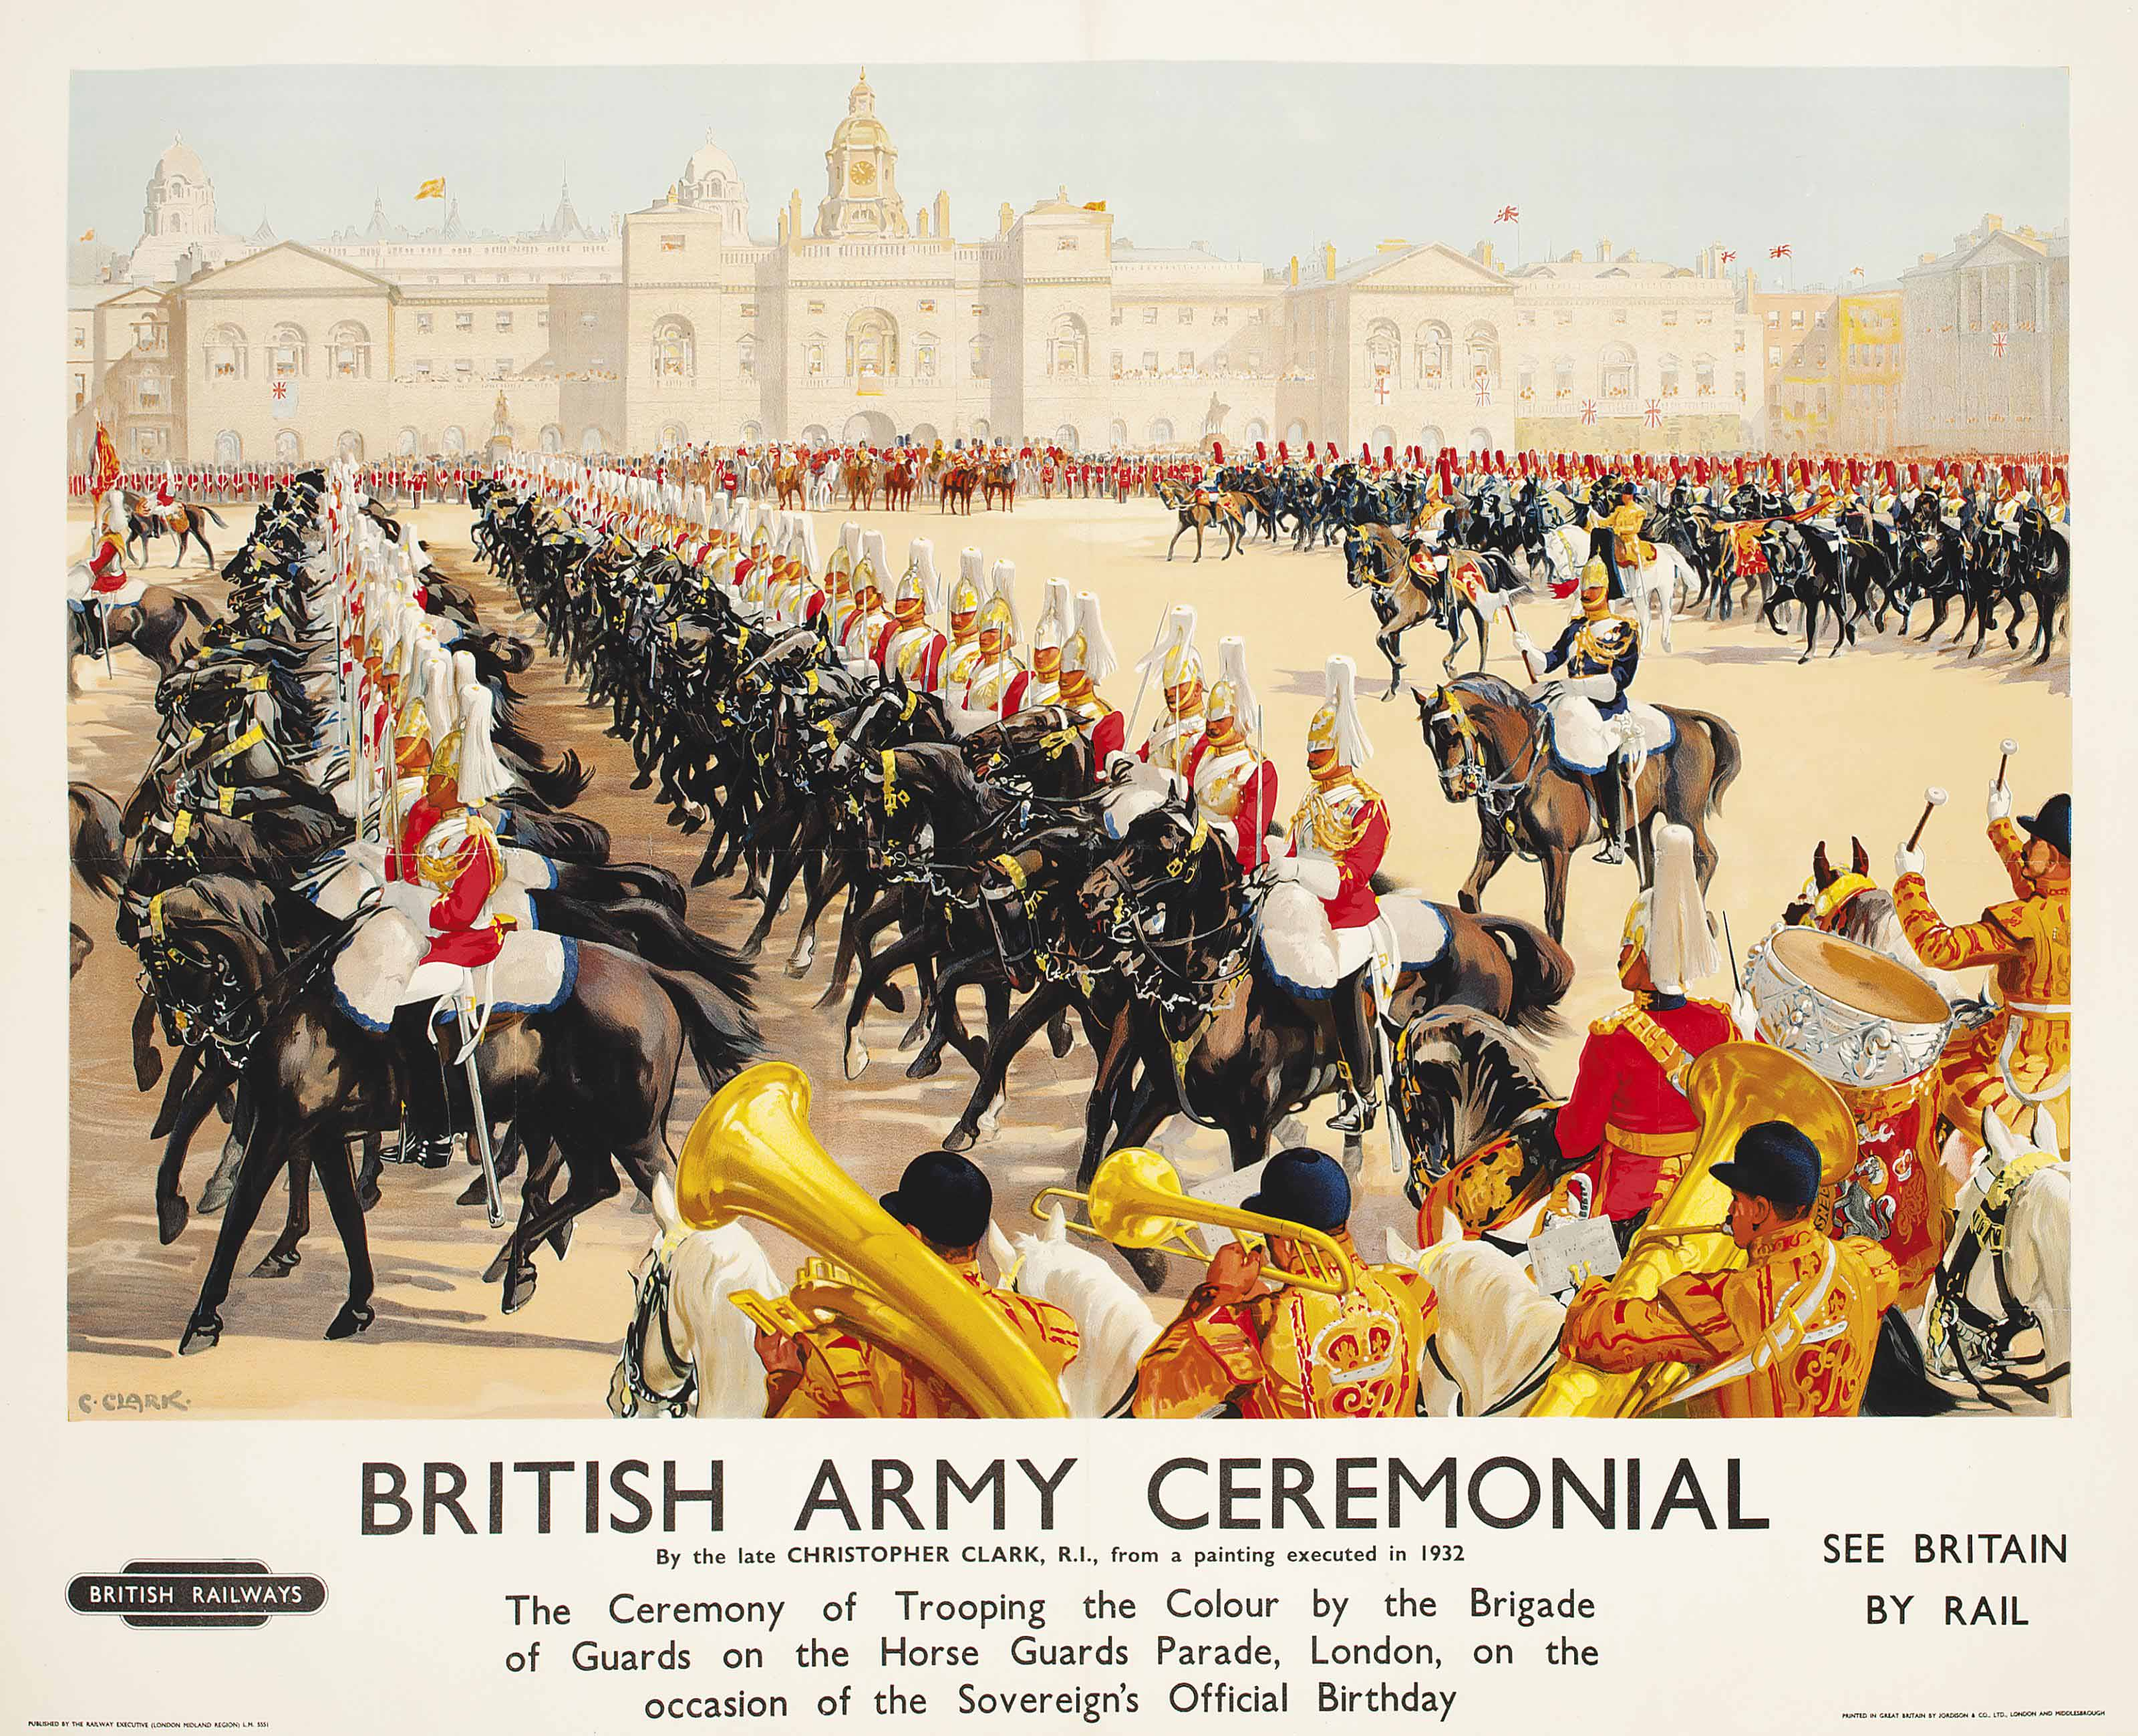 BRITISH ARMY CEREMONIAL